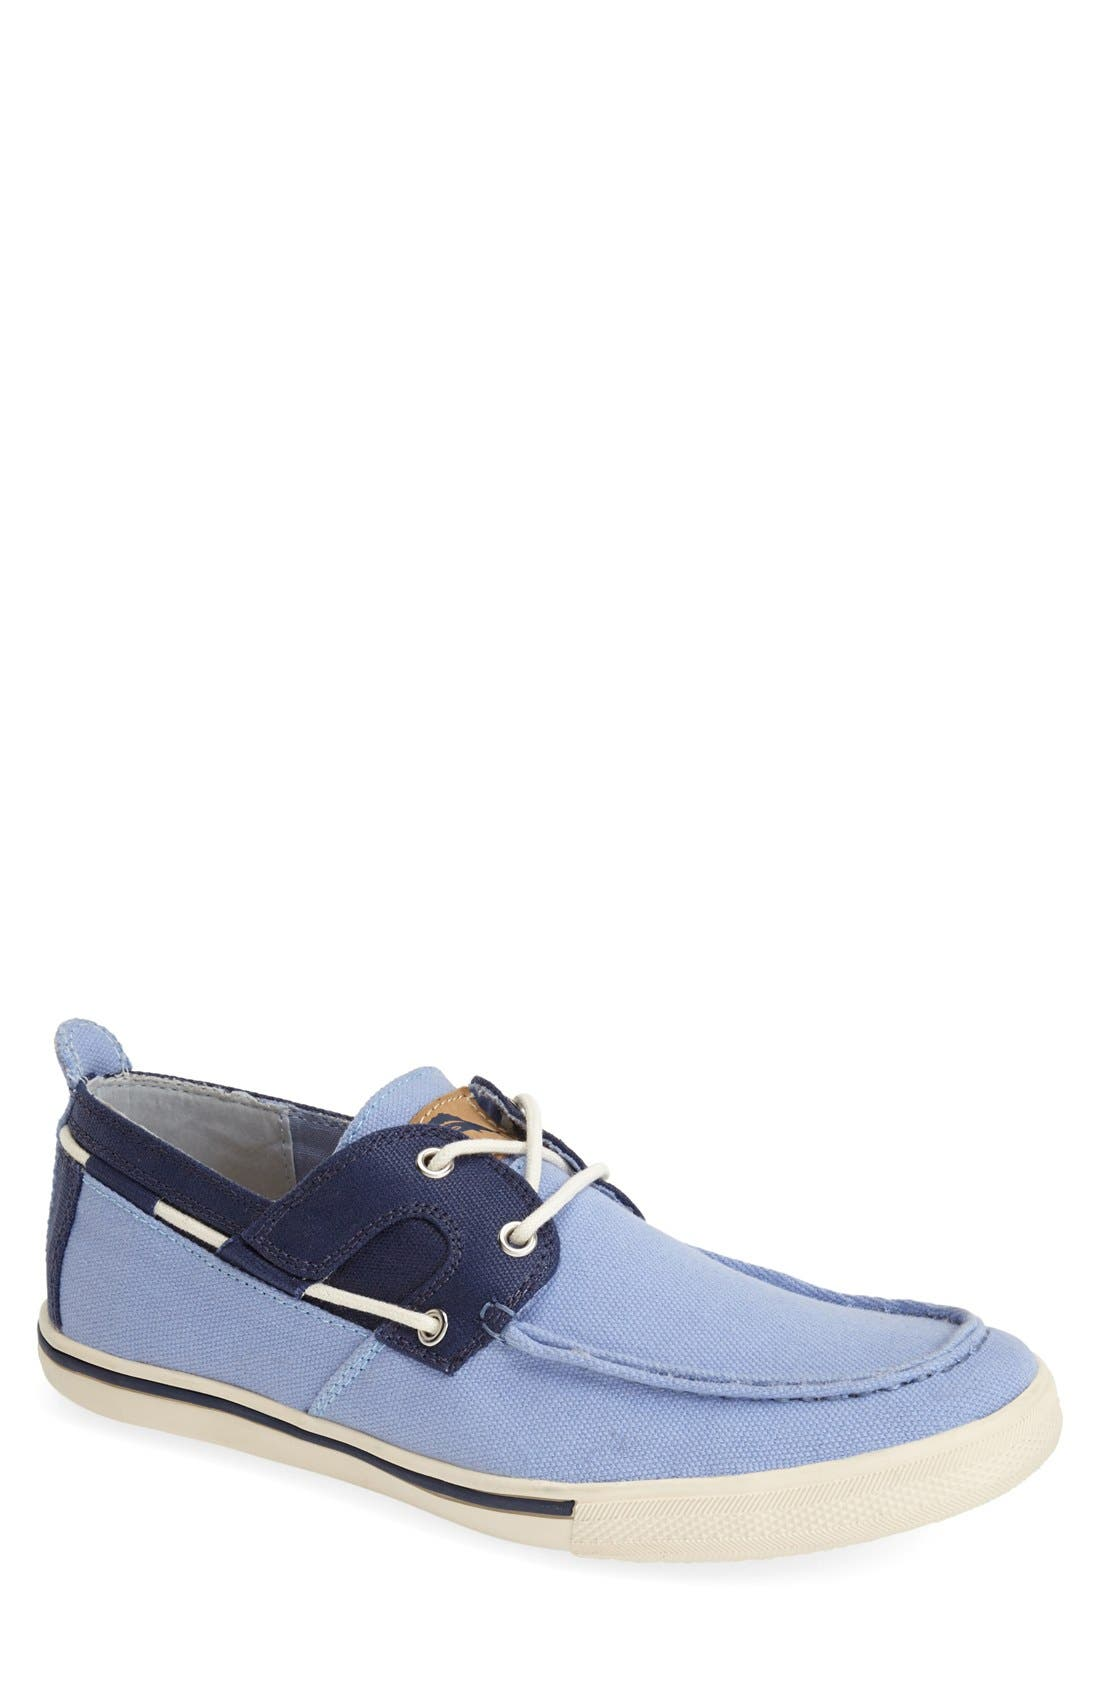 Alternate Image 1 Selected - Tommy Bahama 'Calderon' Boat Shoe